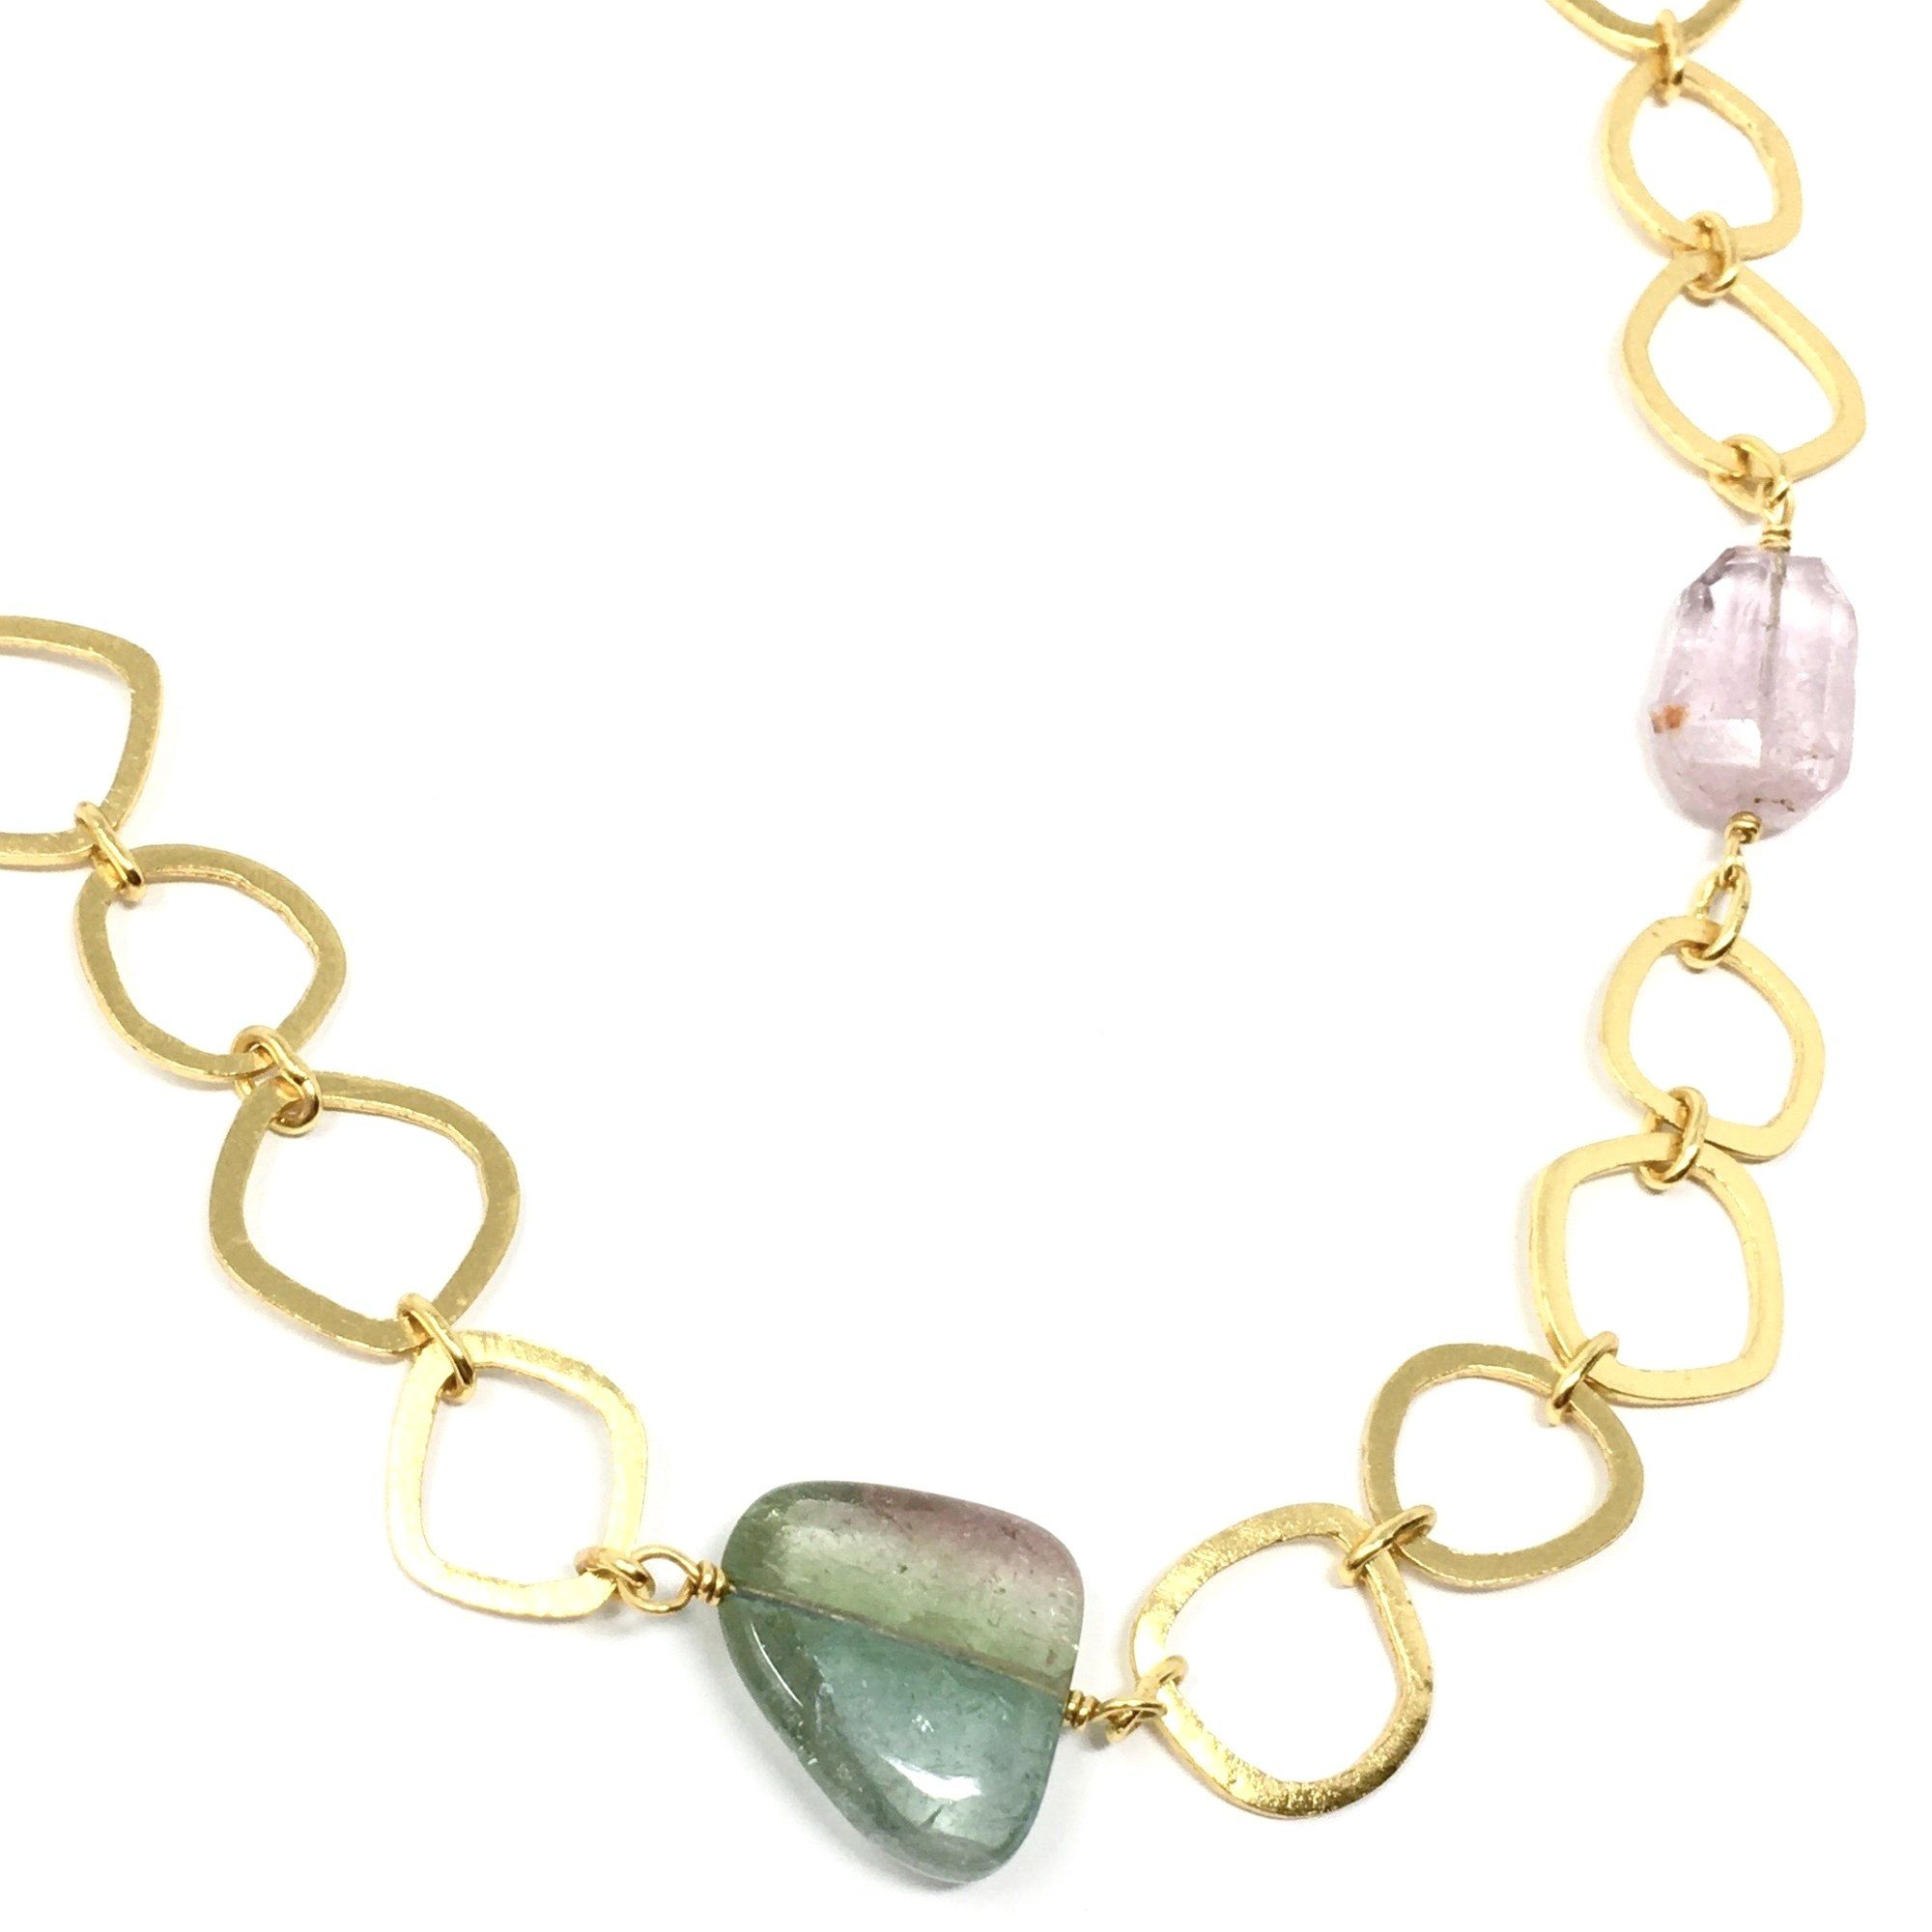 Free Form Link and Multi Coloured Tourmaline Chain - Barnbury